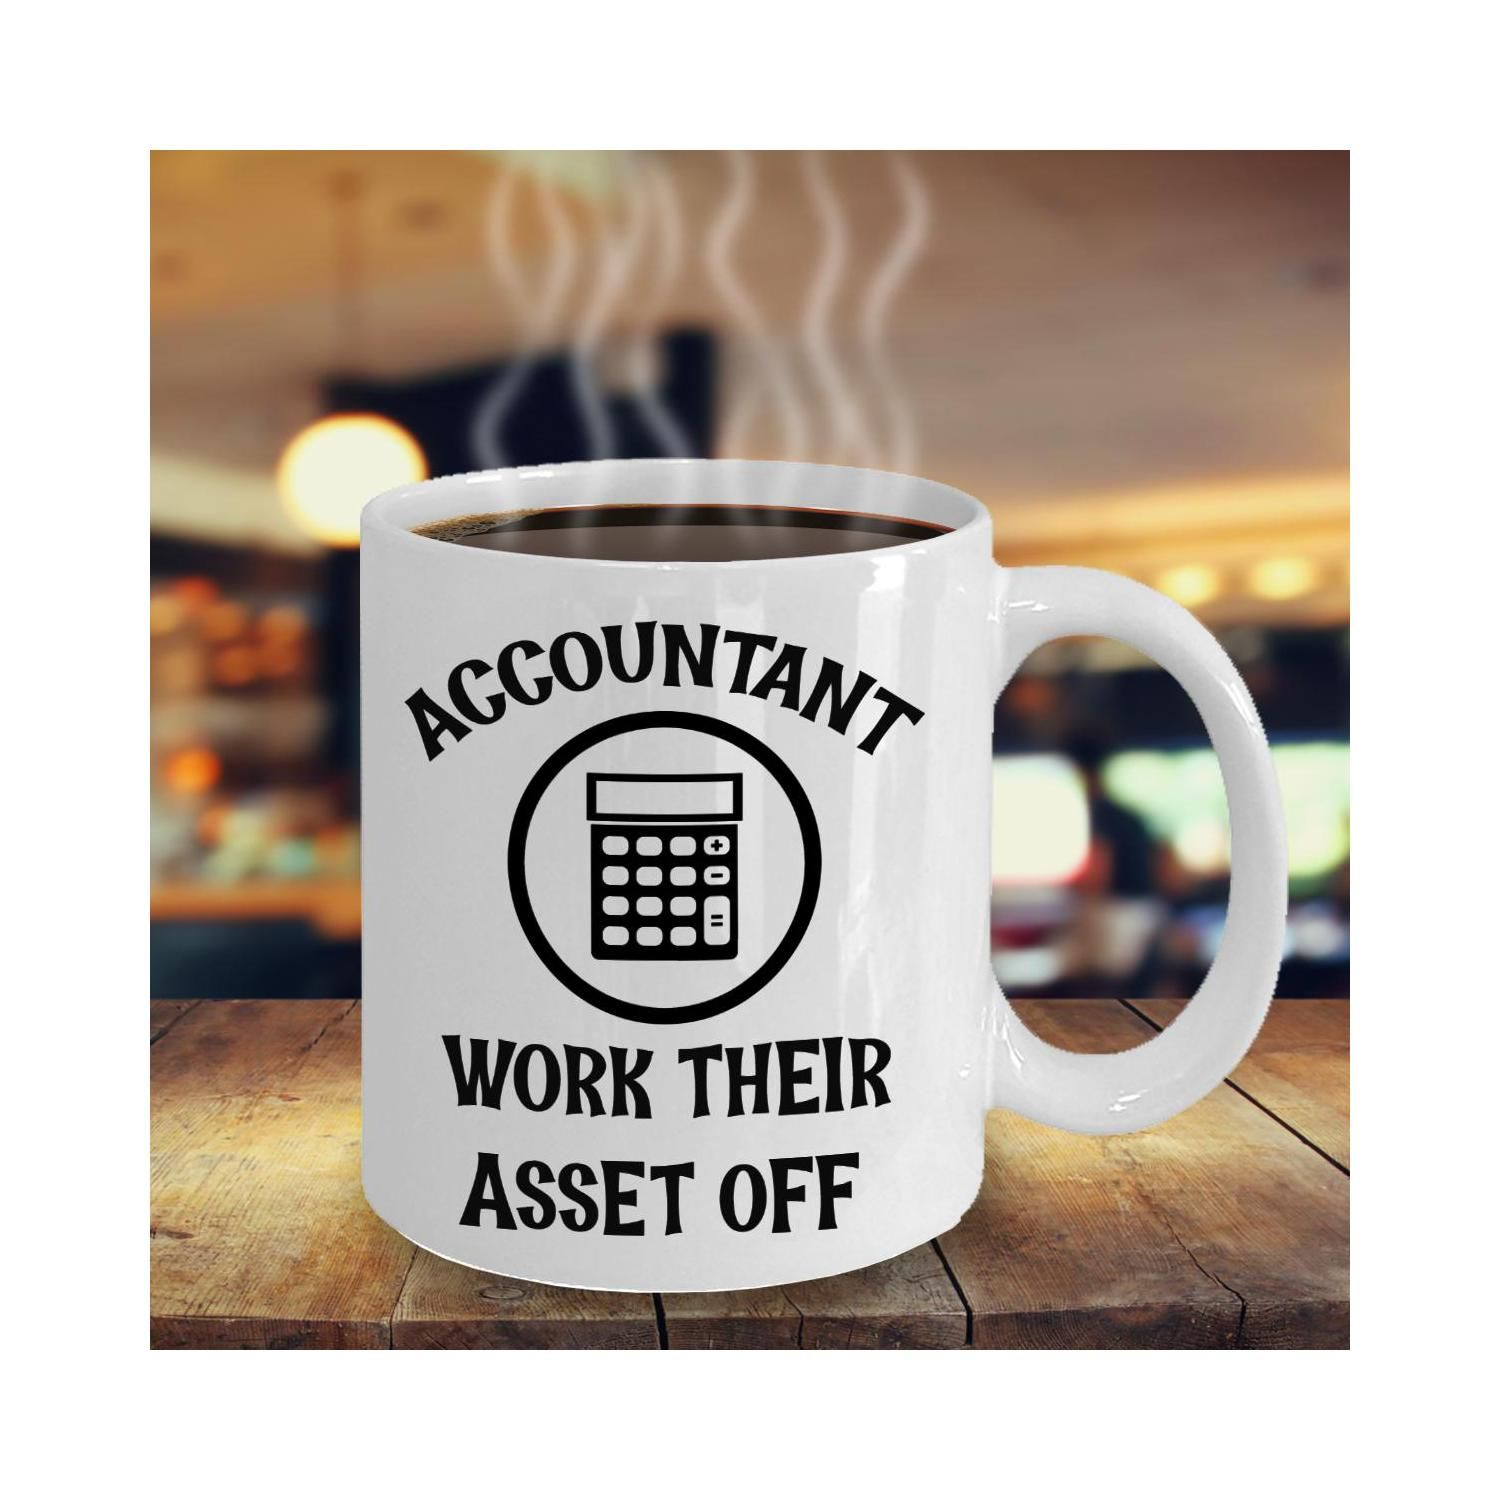 Accountant work with their asset off mug gifts funny gag